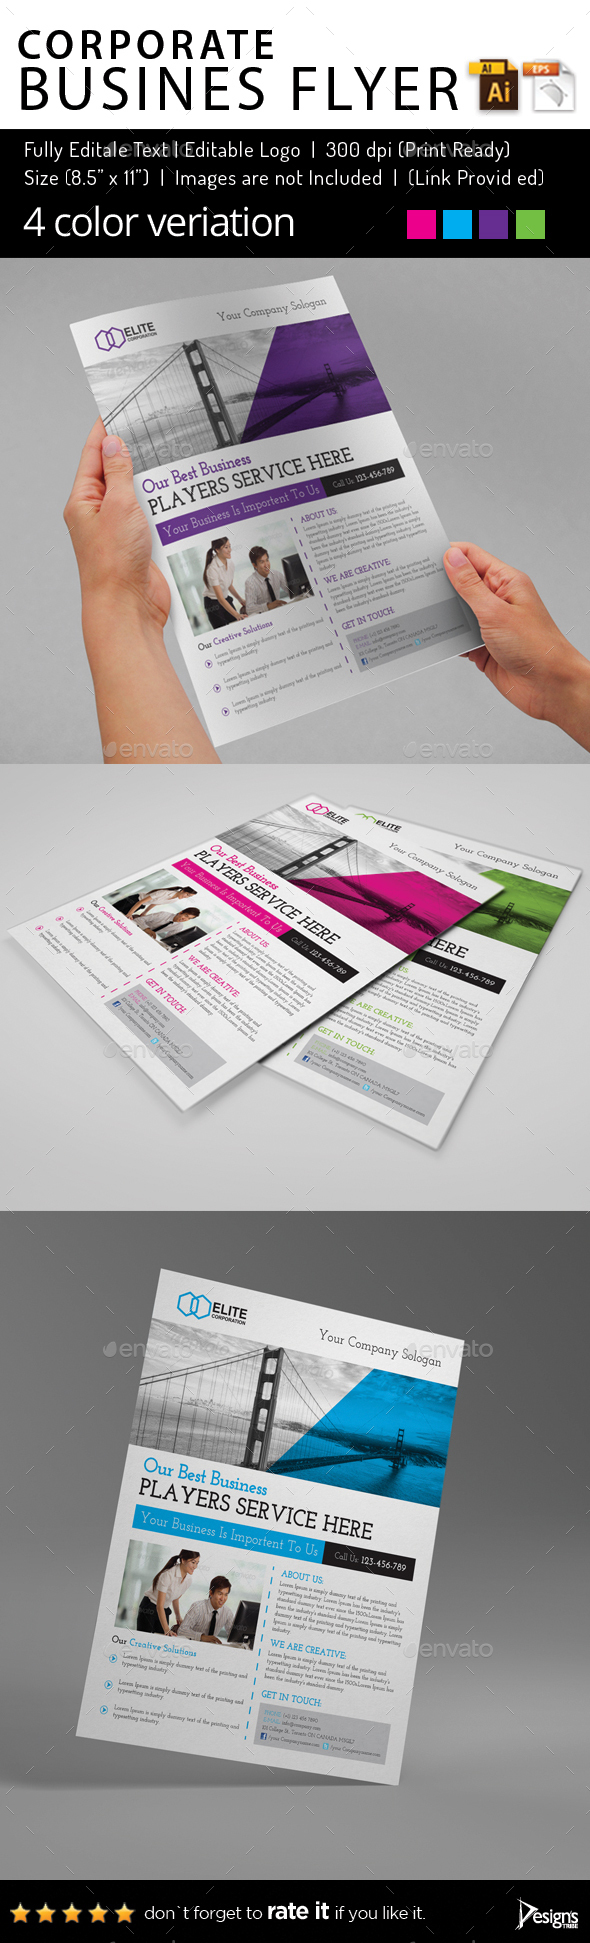 Multipurpose Business Flyer 84 - Corporate Flyers